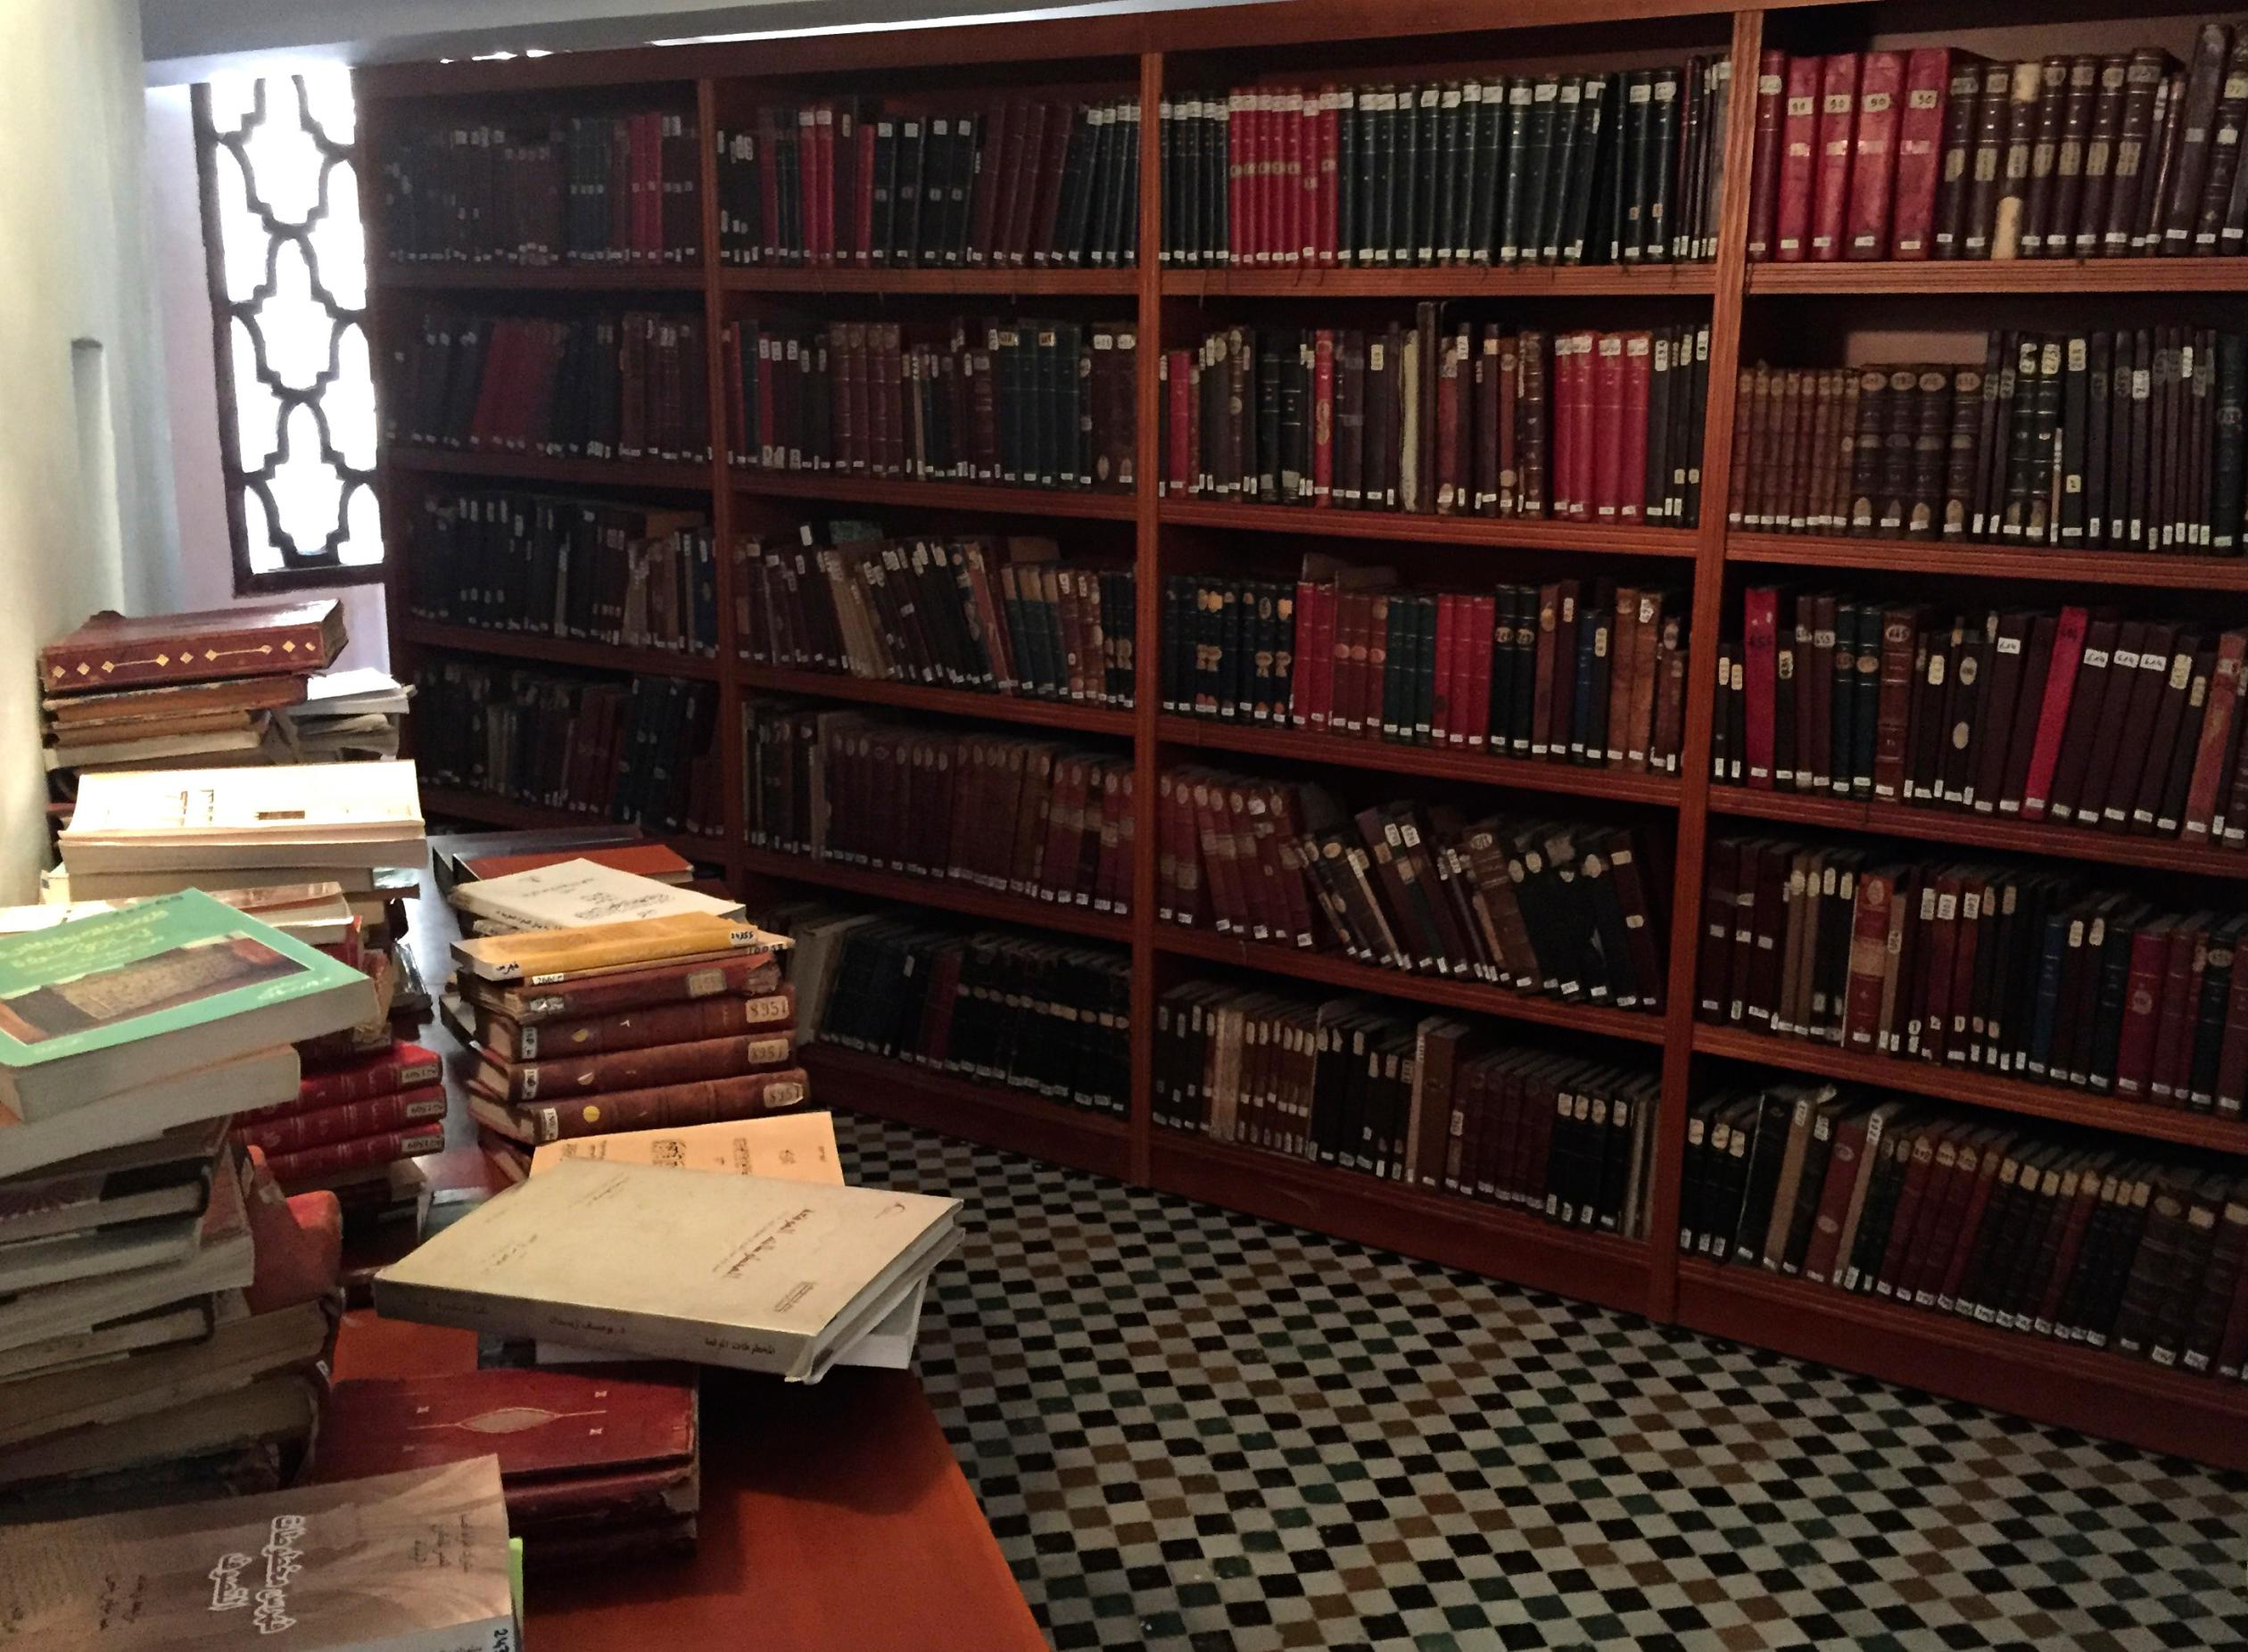 Corner of a library at University of Al Qarawiyyin, with books on shelves and stacks of books on tables